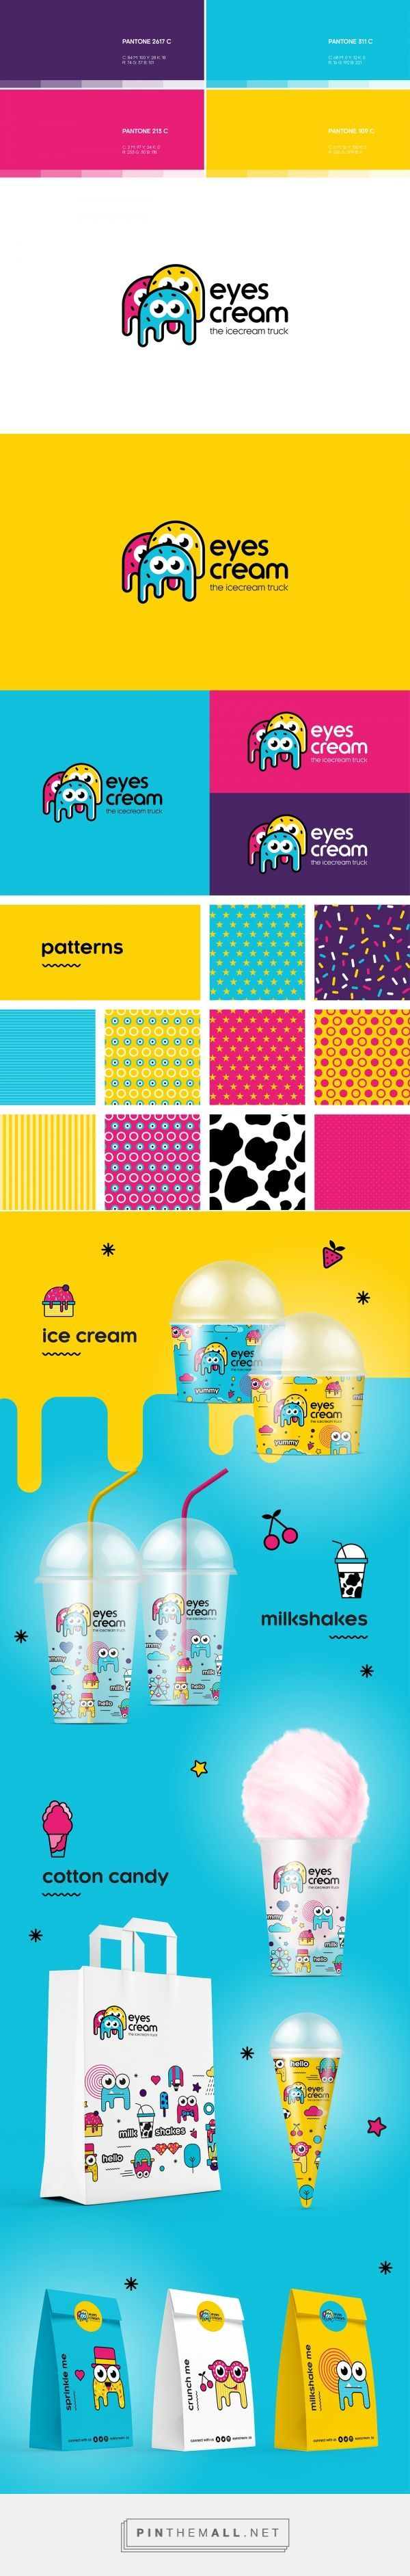 Branding, illustration and packaging for Eyes Cream Truck on Behance curated by Packaging Diva. The cutest packaging design concept based upon eyes for the packaging smile file : )